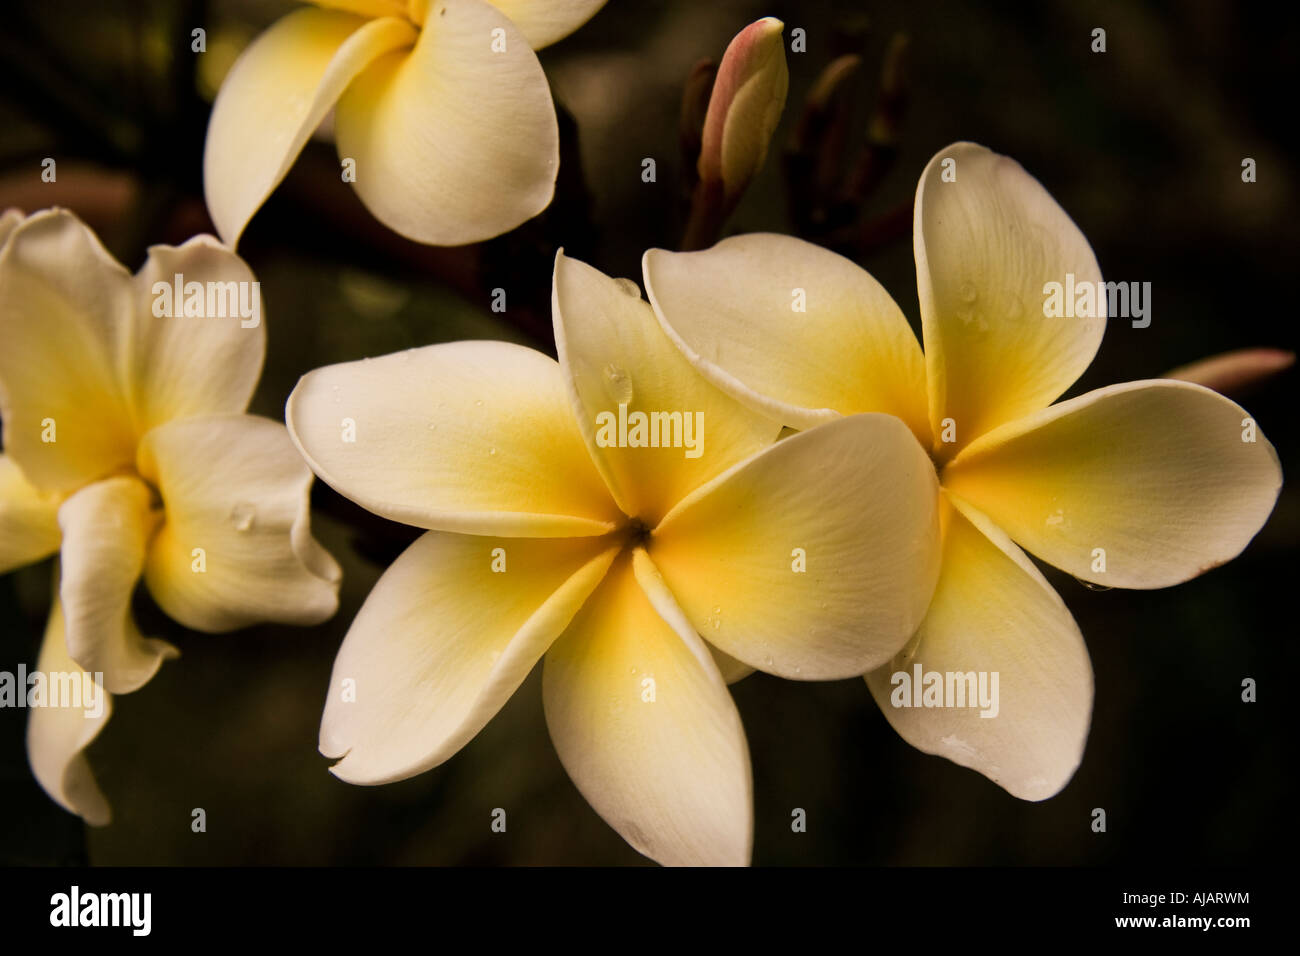 Dew drop on a hawaiian plumeria flower stock photo 14678239 alamy dew drop on a hawaiian plumeria flower izmirmasajfo Choice Image